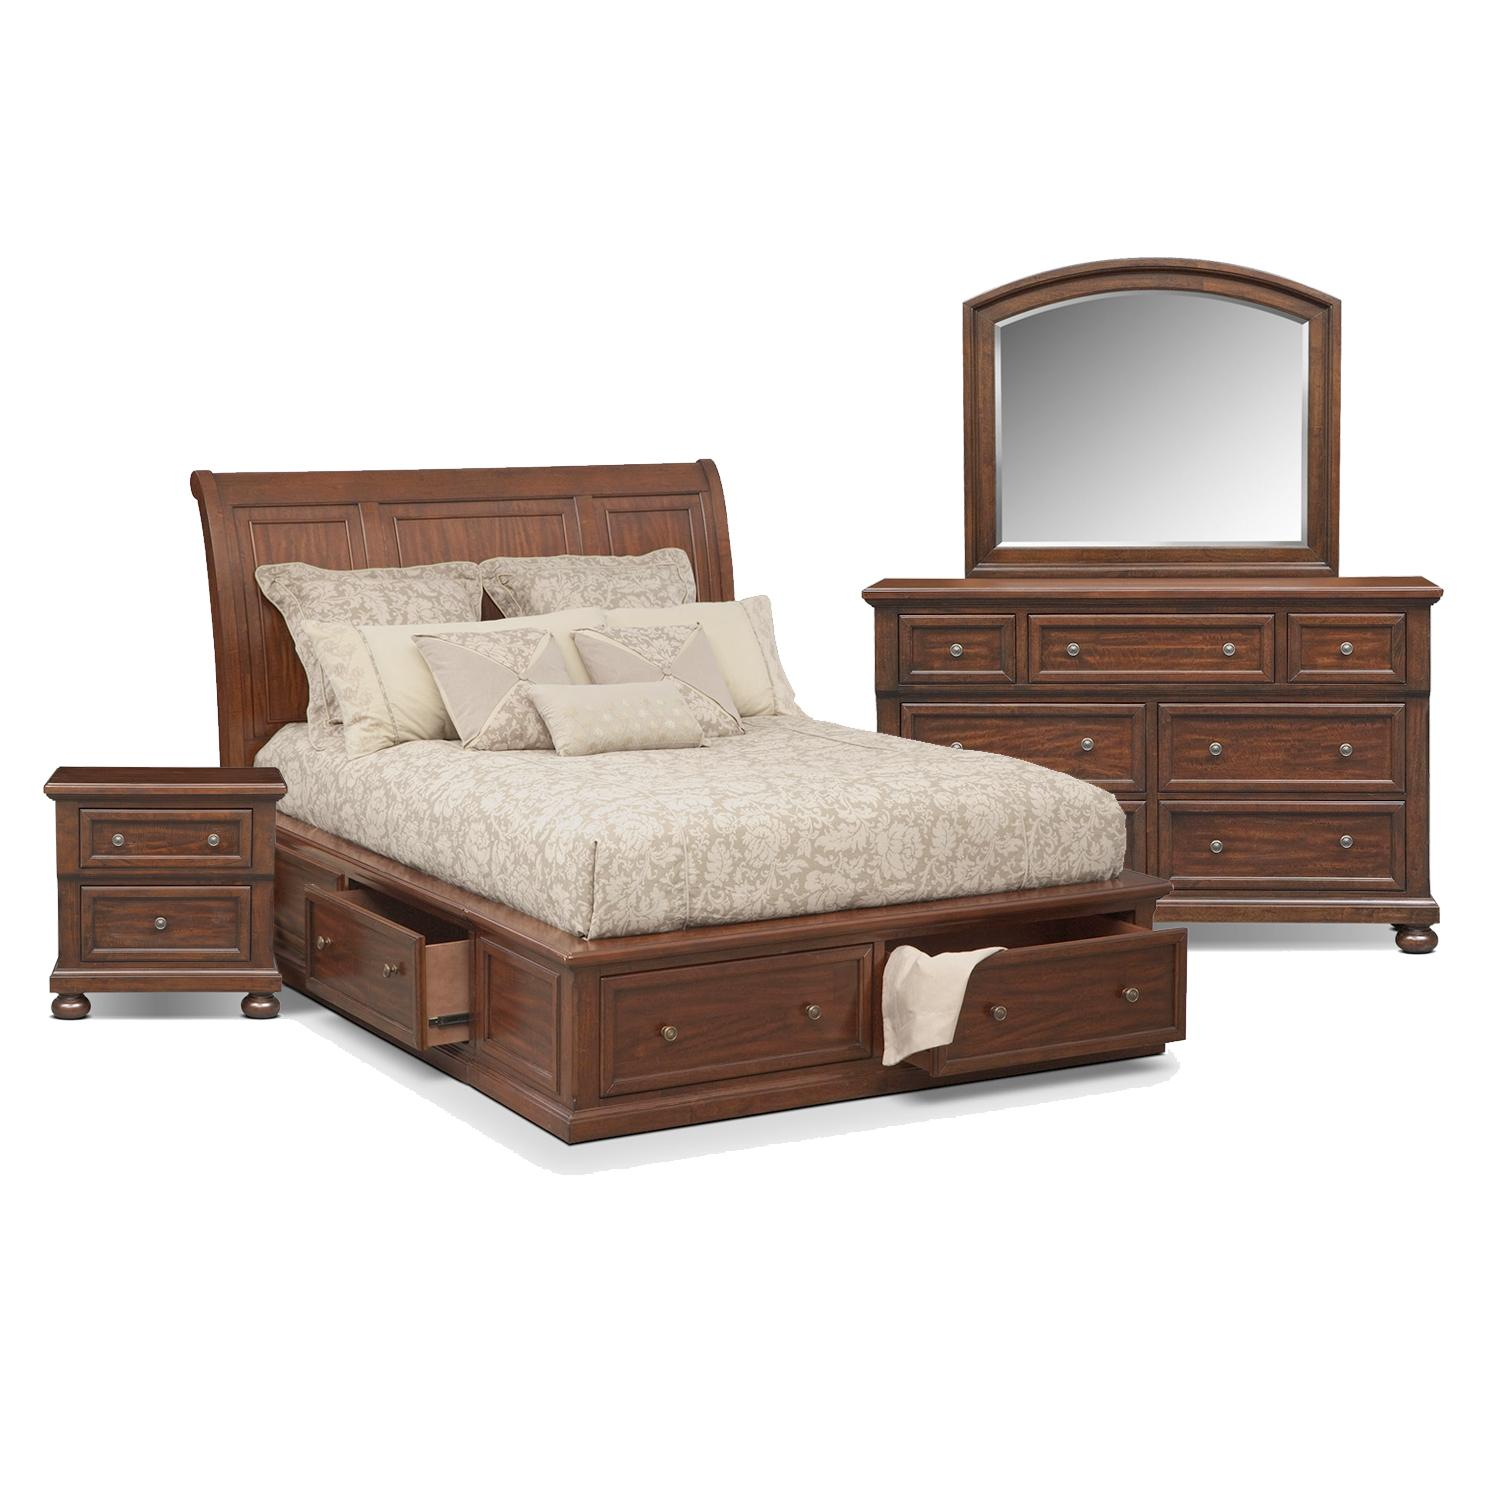 furniture bed images. Bedroompackagescategoryimage Furniture Bed Images Value City